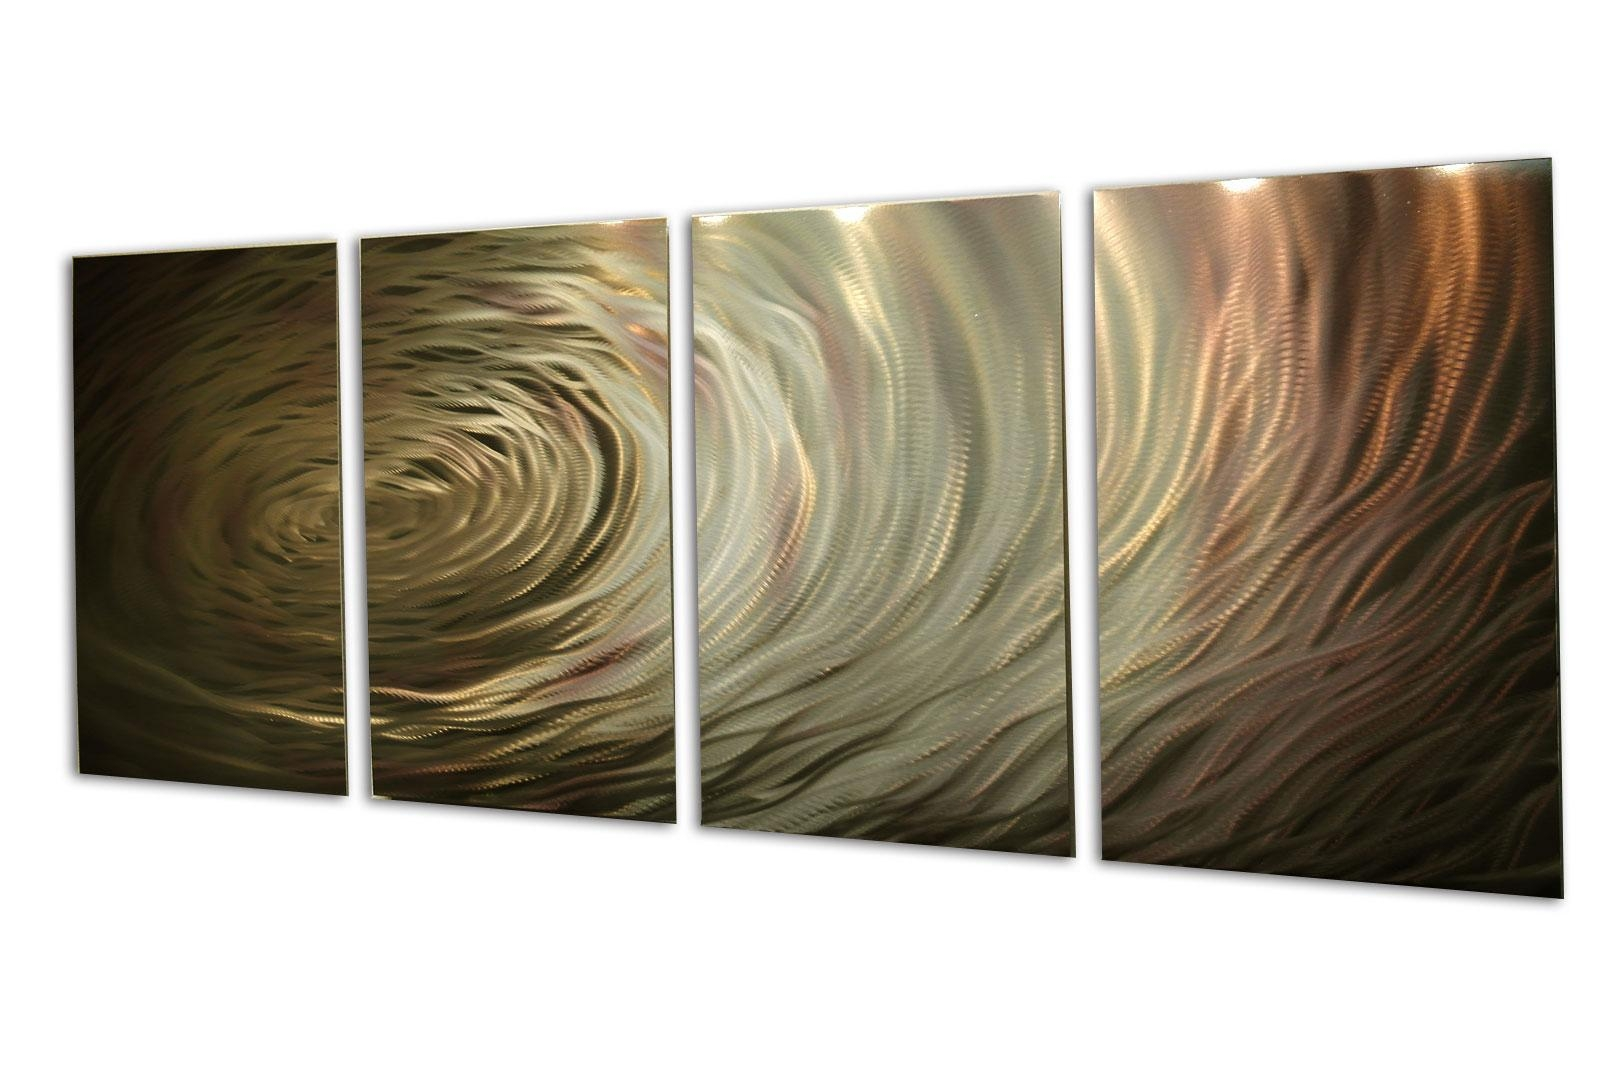 Ripple Brown Gold- Metal Wall Art Abstract Sculpture Modern Decor with Metal Abstract Wall Art